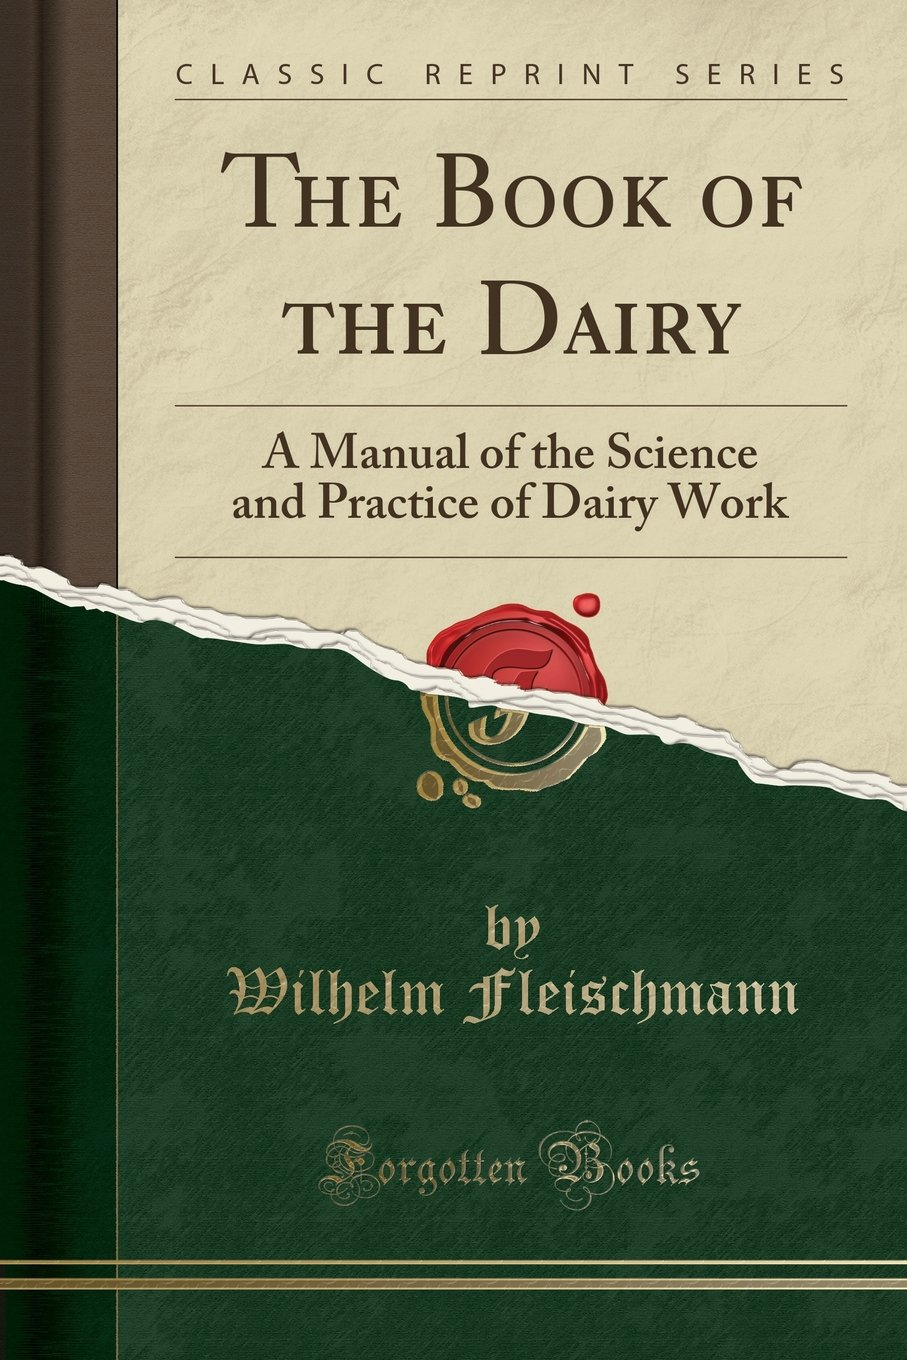 The Book of the Dairy: A Manual of the Science and Practice of Dairy Work (Classic Reprint) PDF